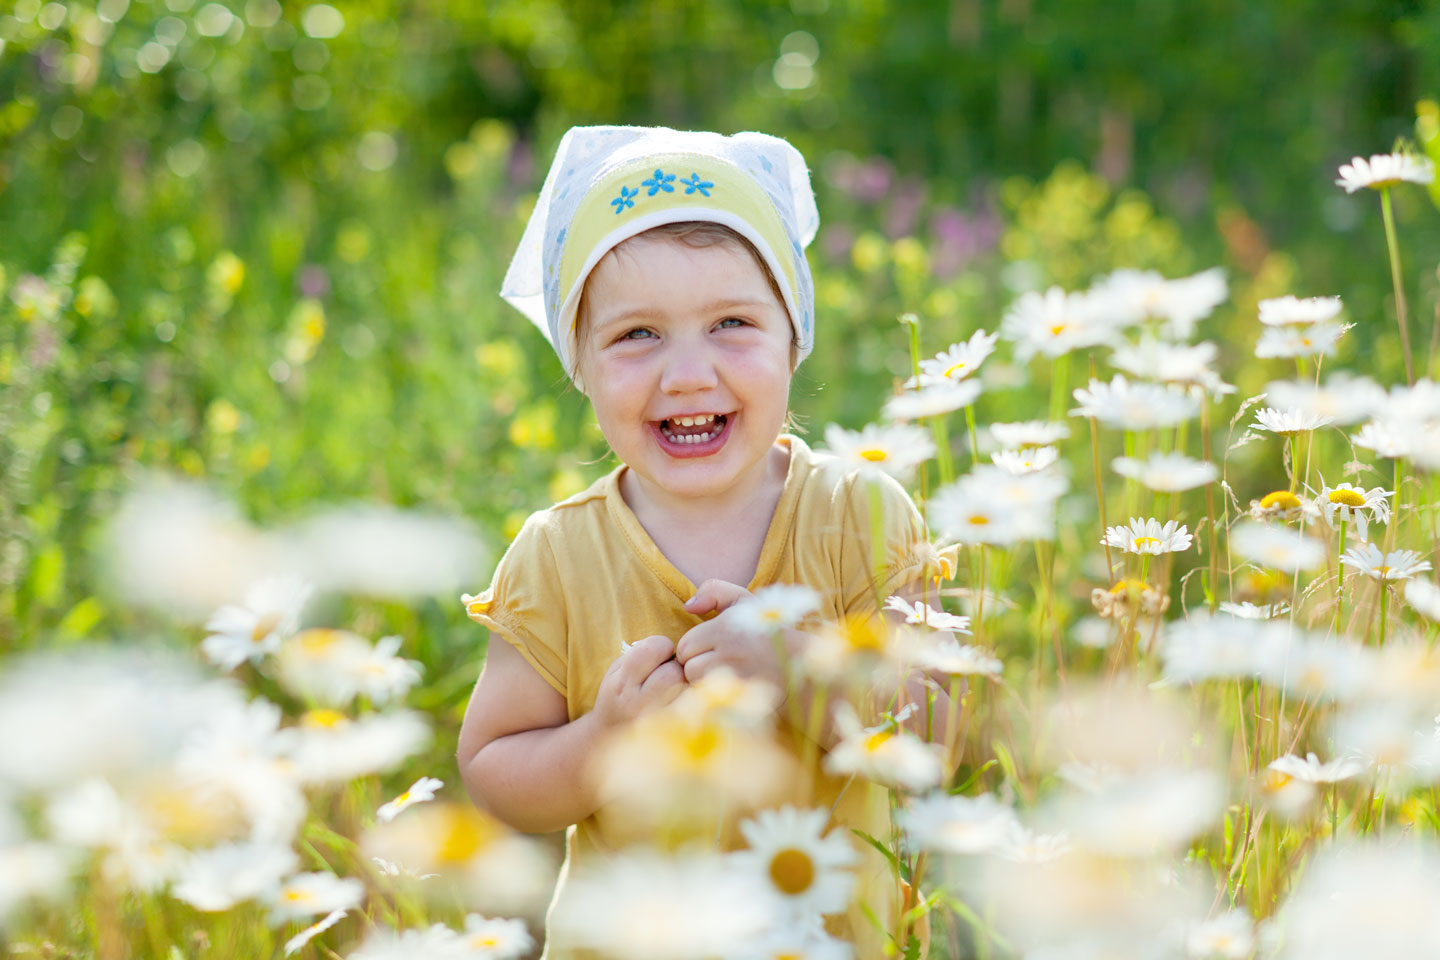 Easy Tips for Caring for Baby Teeth